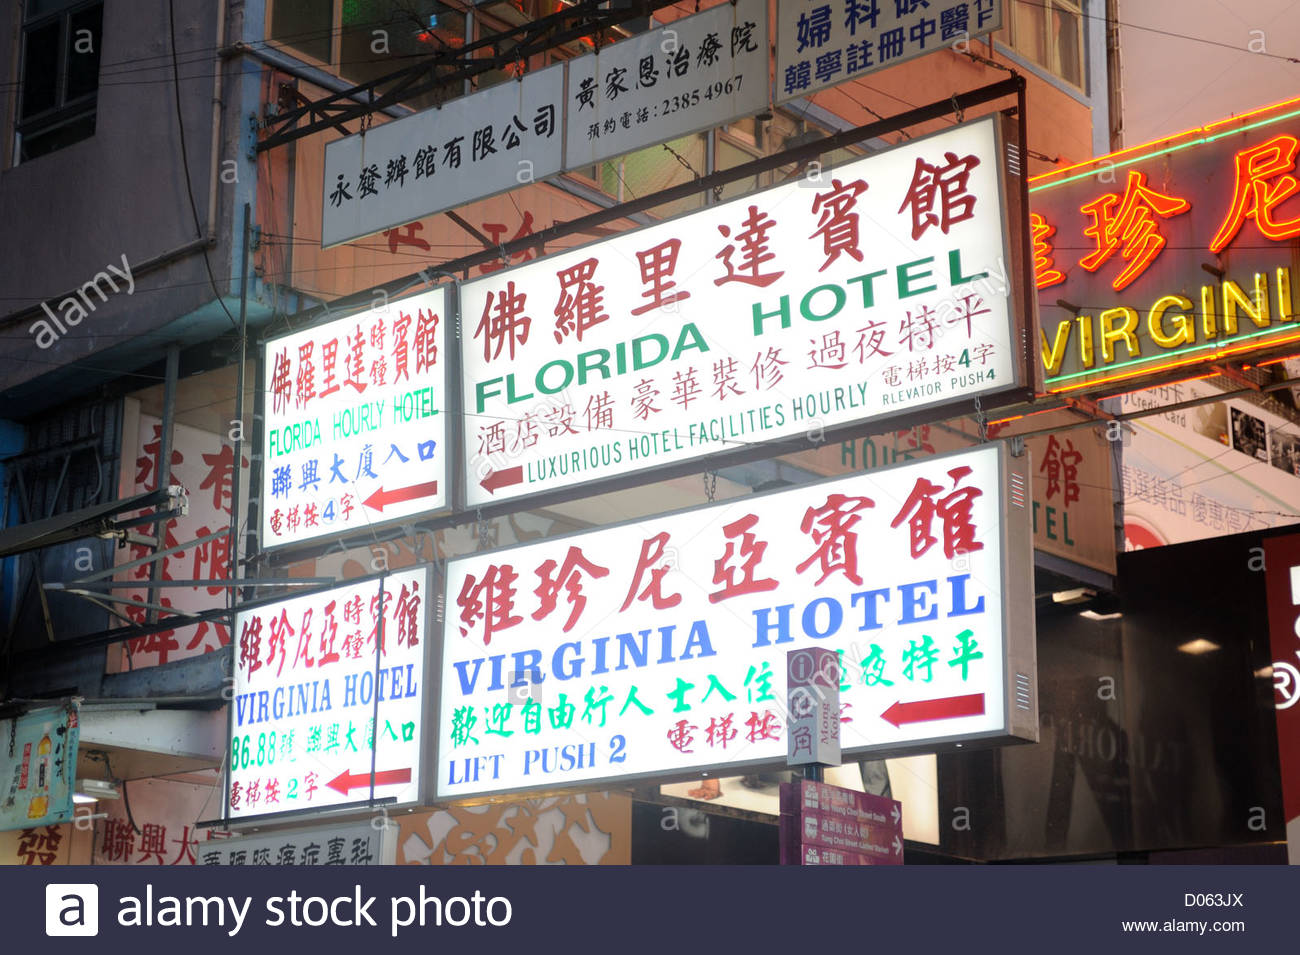 Hong Kong S.A.R Hotels in Mong Kok, some with hourly rates. - Stock Image